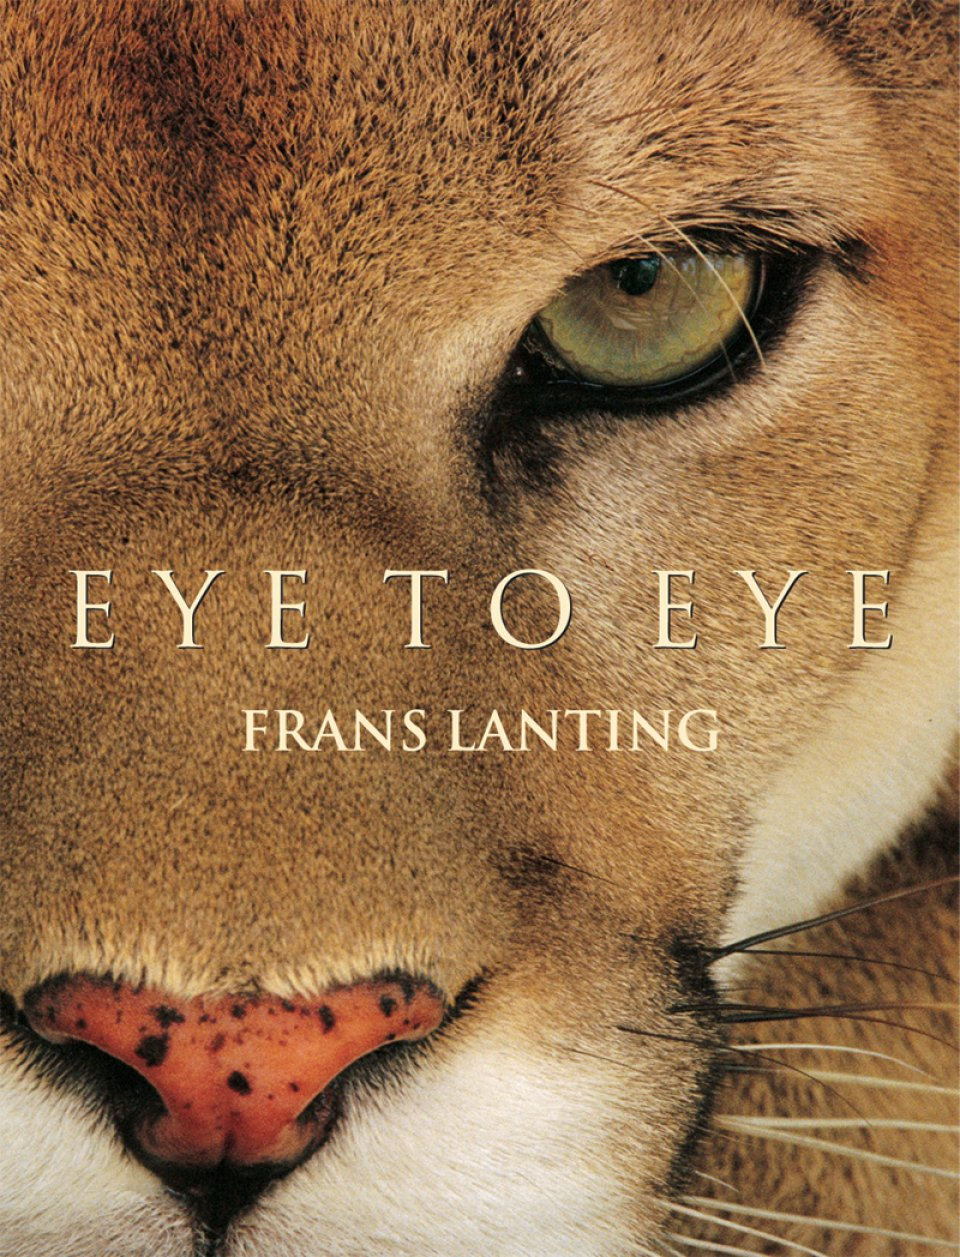 Frans Lanting. Eye to Eye. Limited gilt-edged Art Edition of 1,500 copies, each with the signed cibachrome print Cougar Face, Belize, by TASCHEN Books.